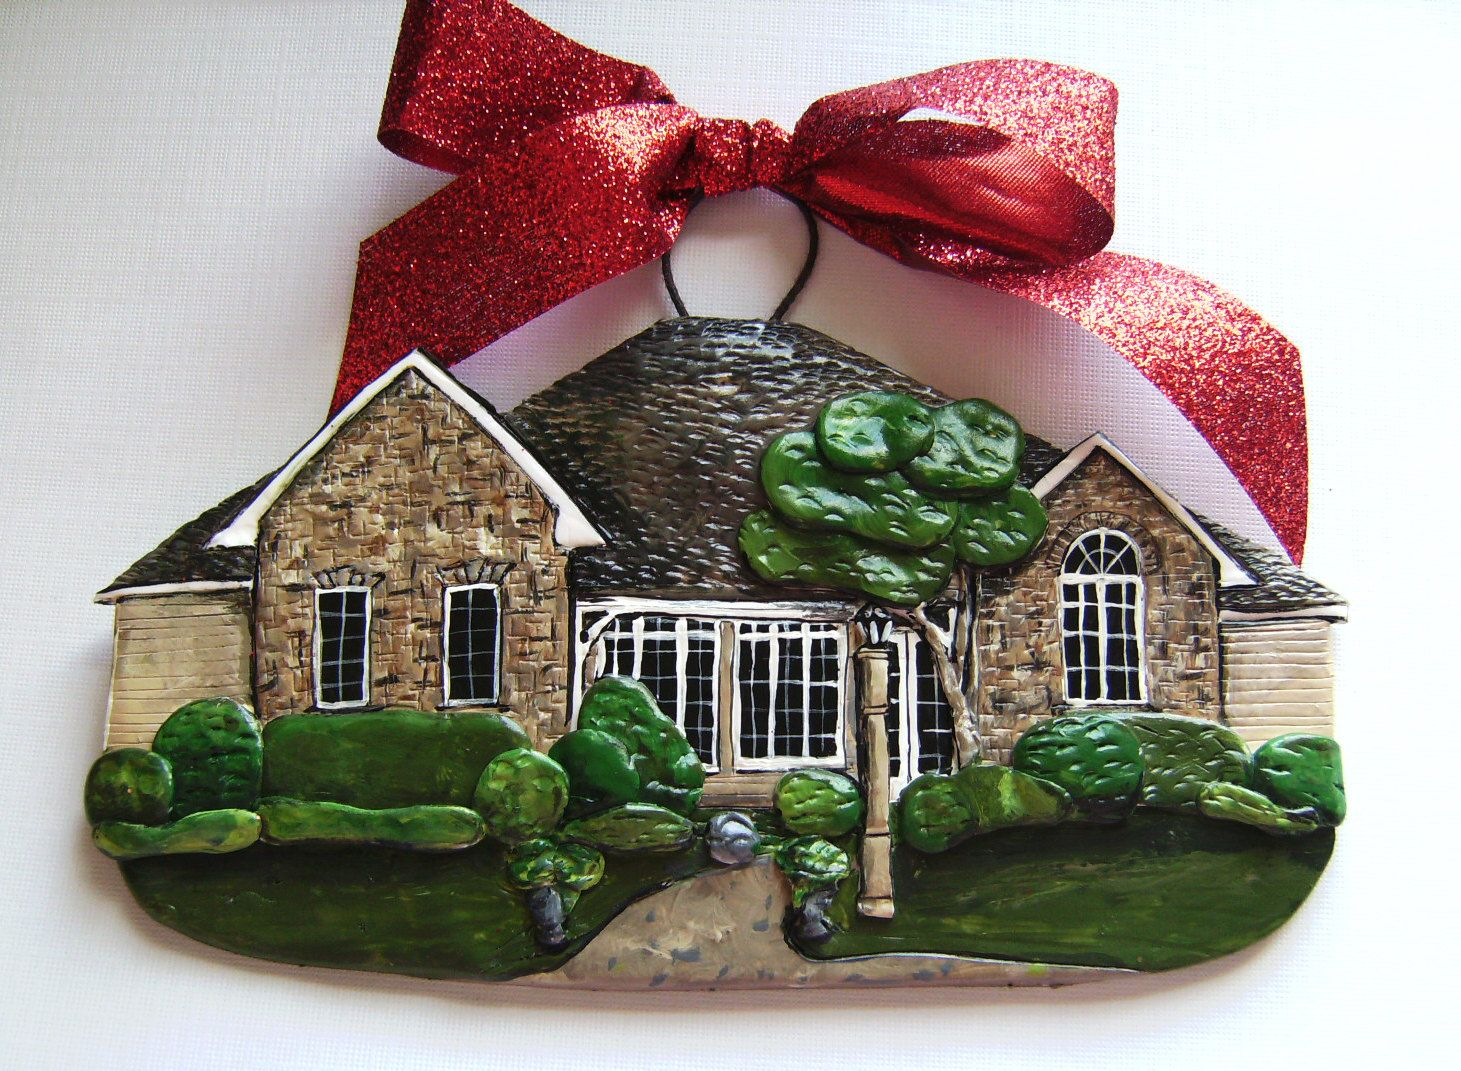 This is so cool! You can actually order an ornament made to look exactly like your house!